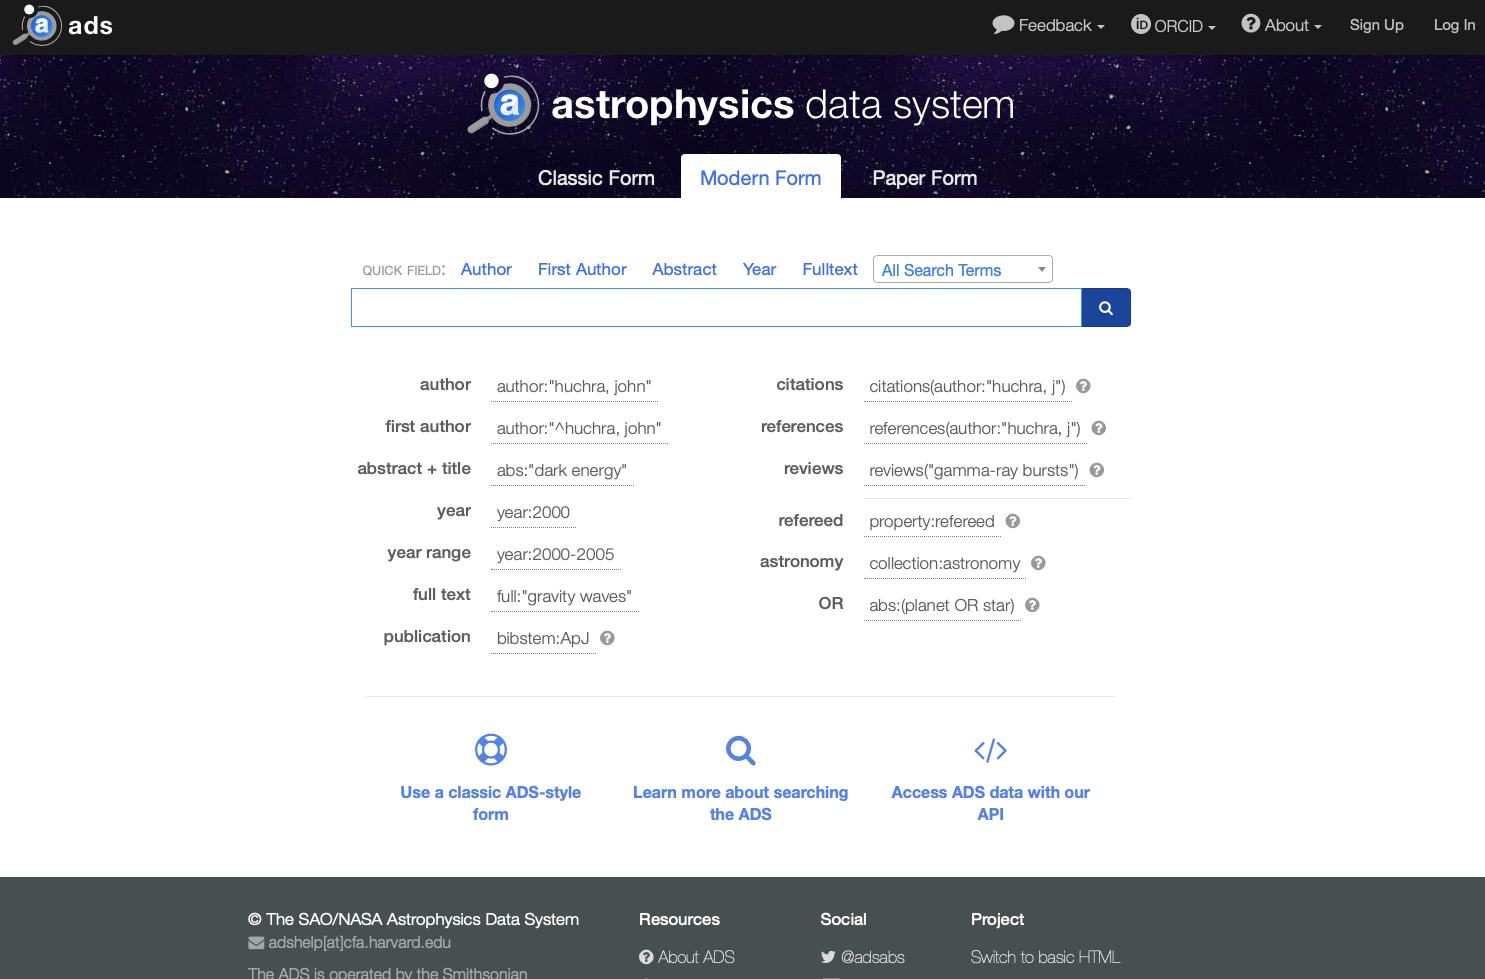 The main ADS page.